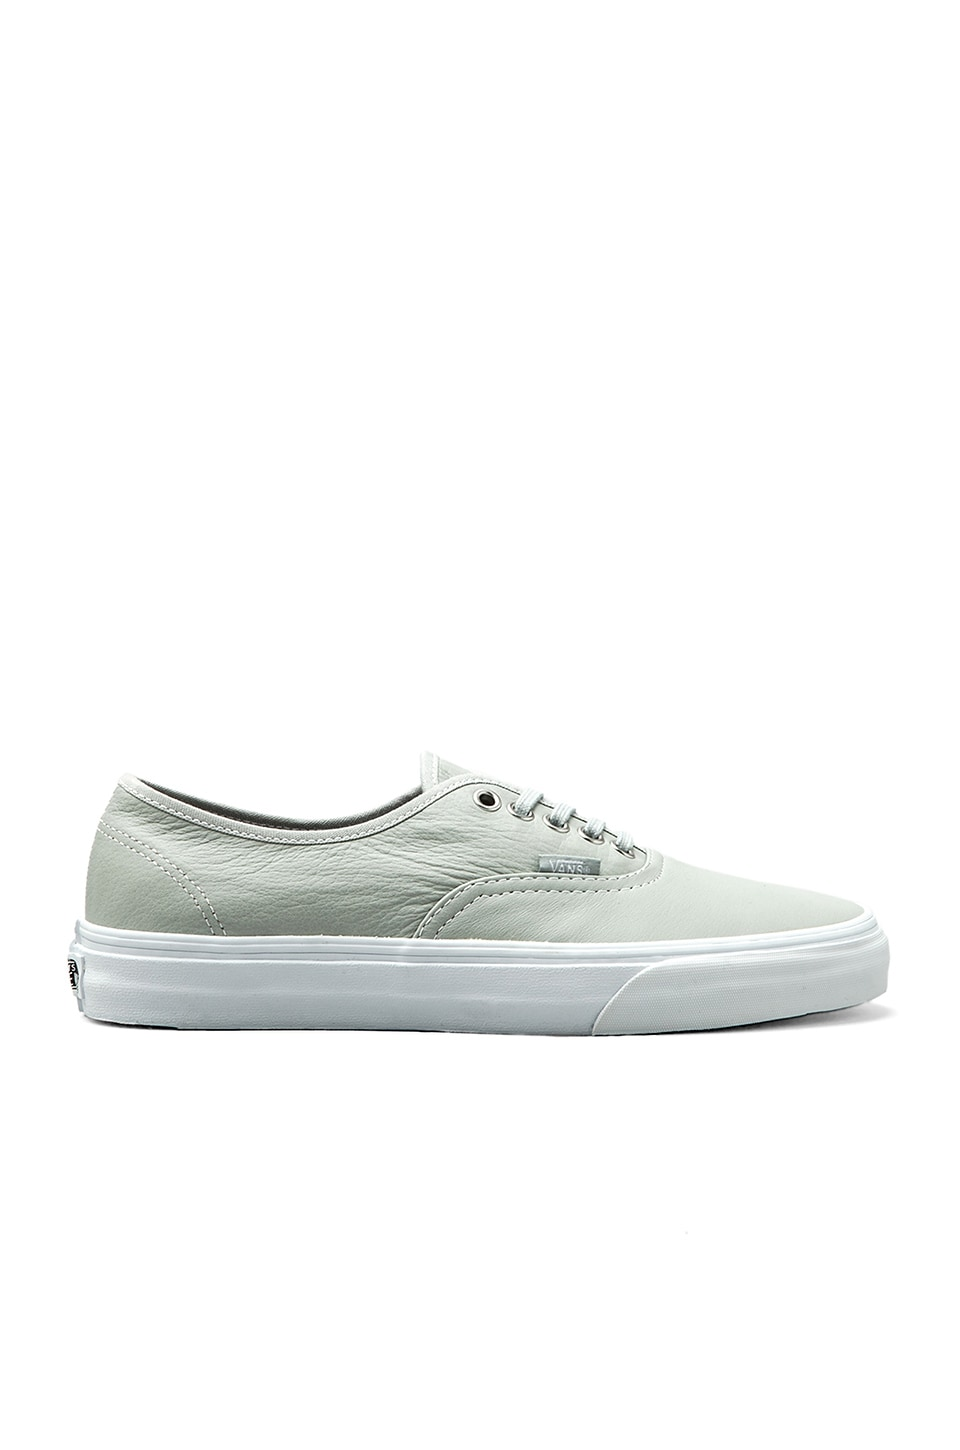 Vans Authentic Aged Leather in Mirage Gray